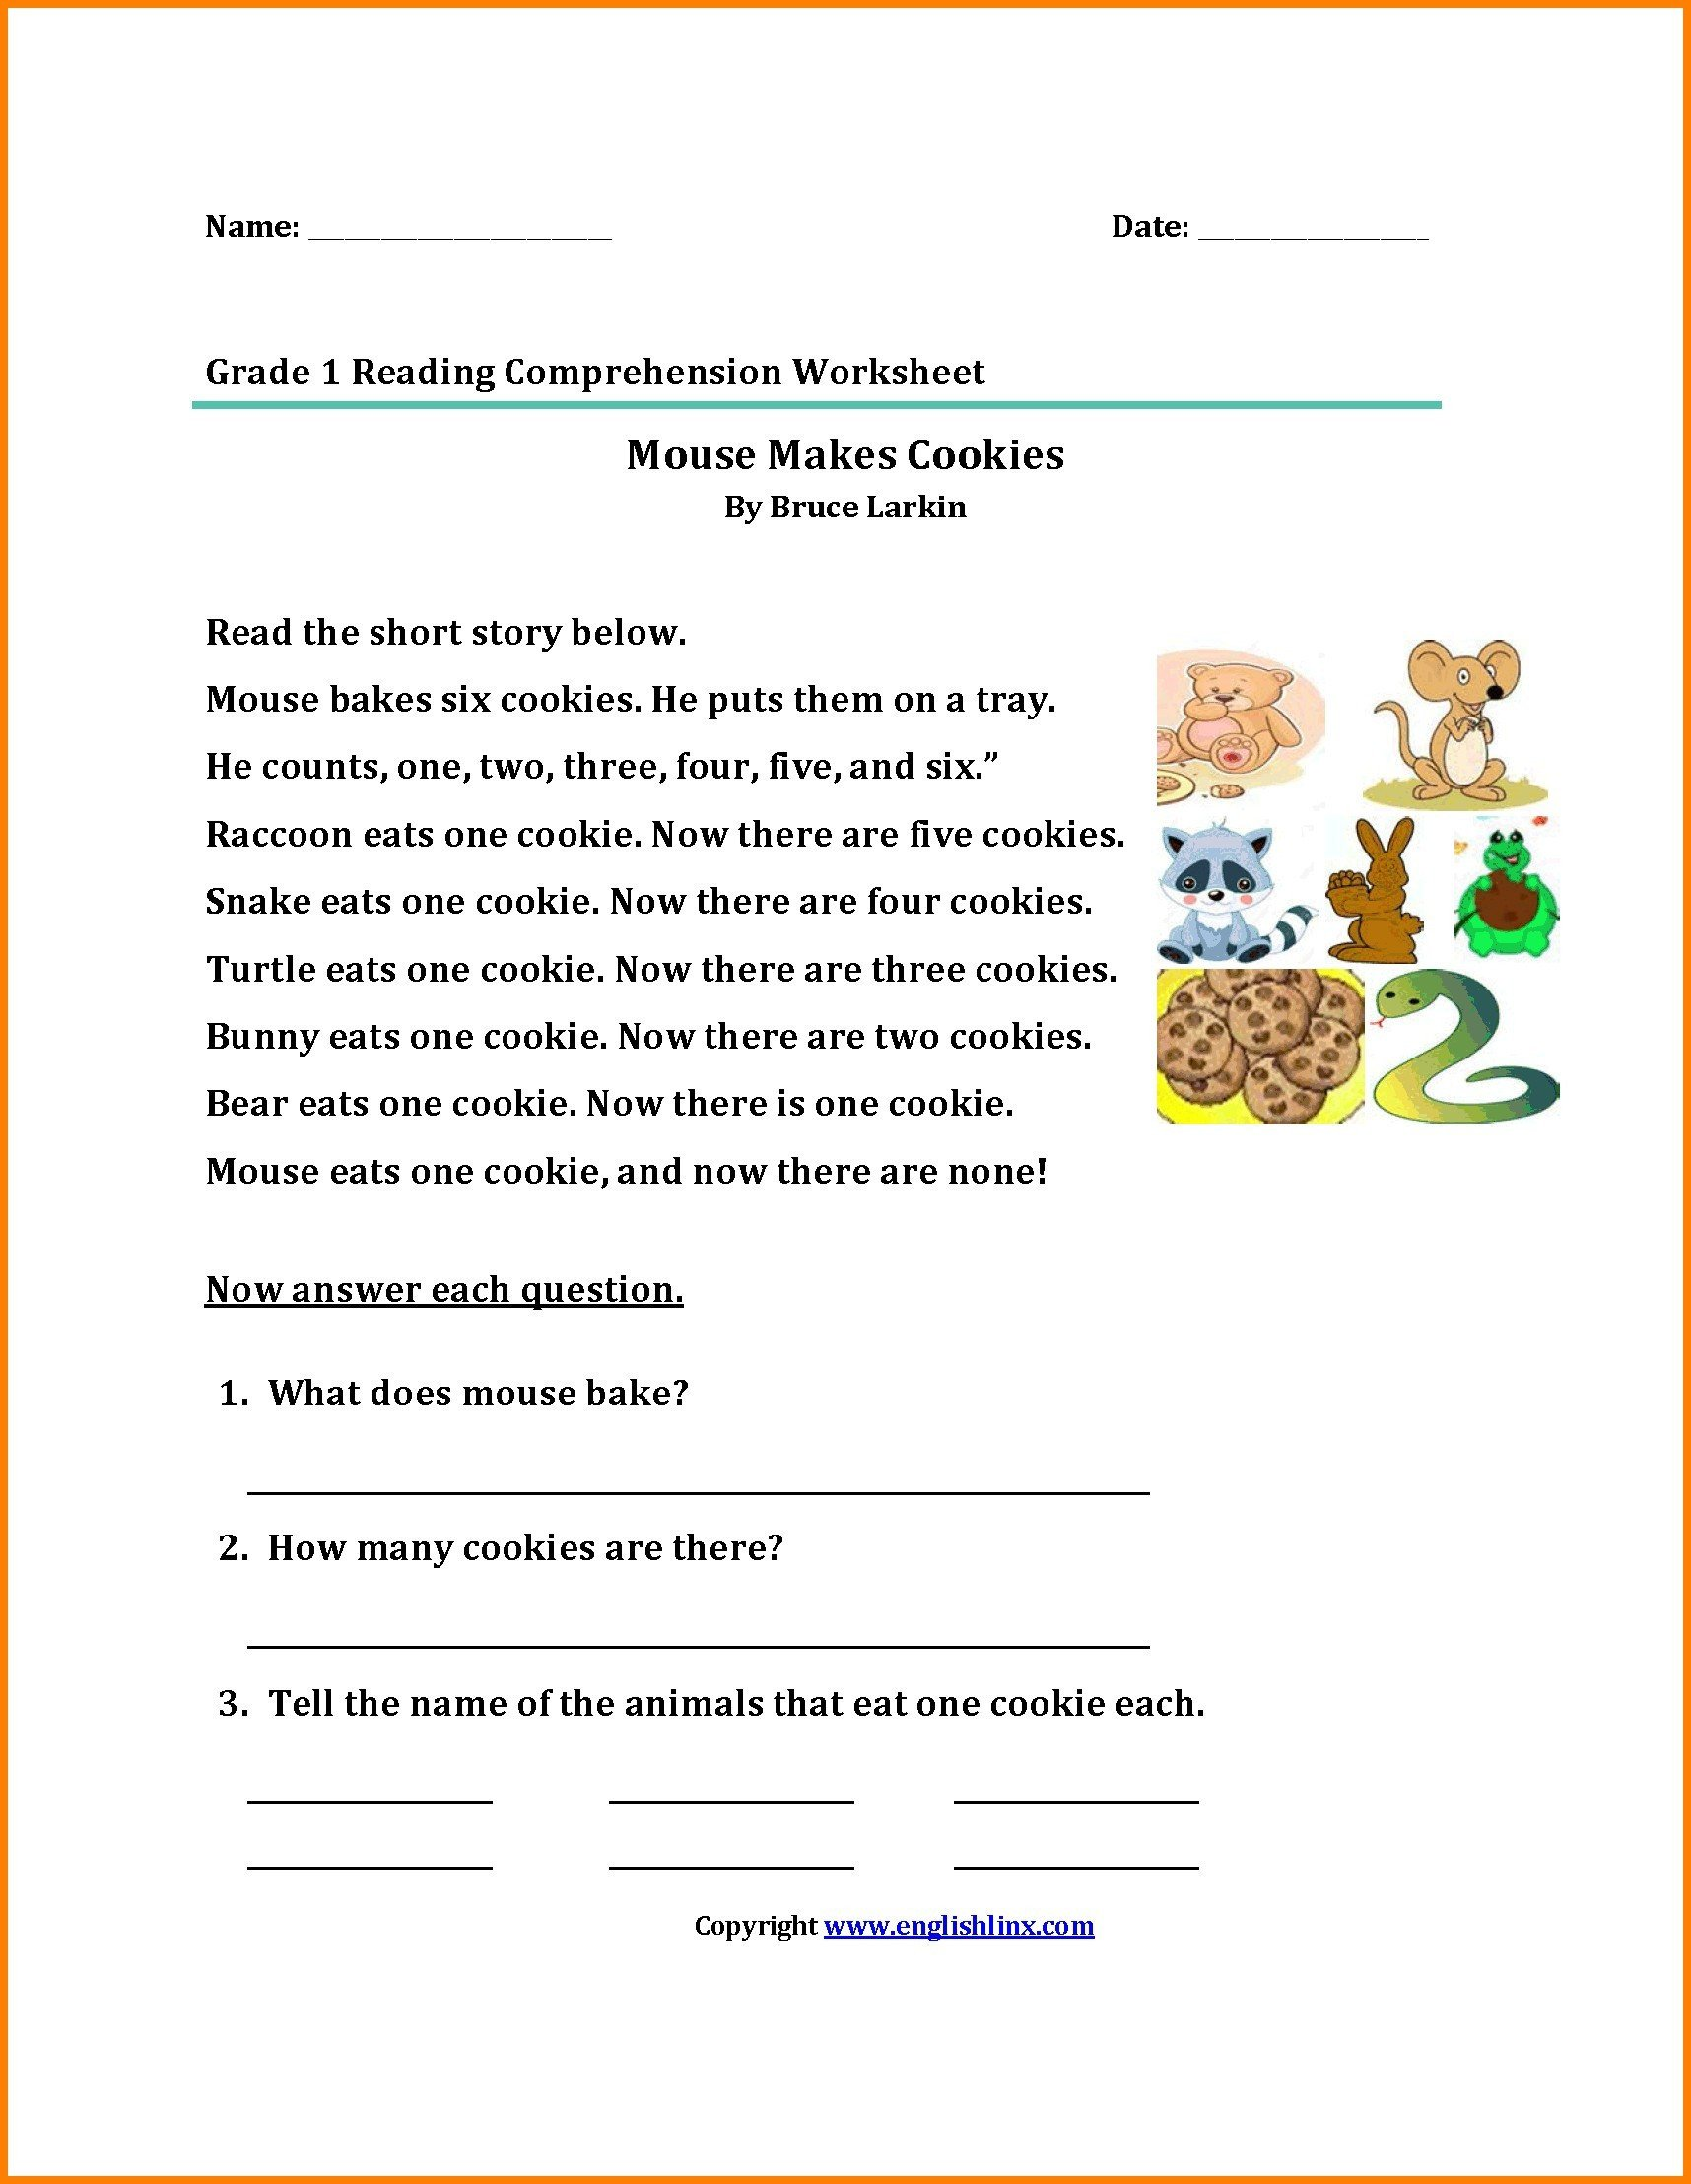 printable 2nd grade reading prehension worksheets awesome first passages about animals new od of dolch words archives share